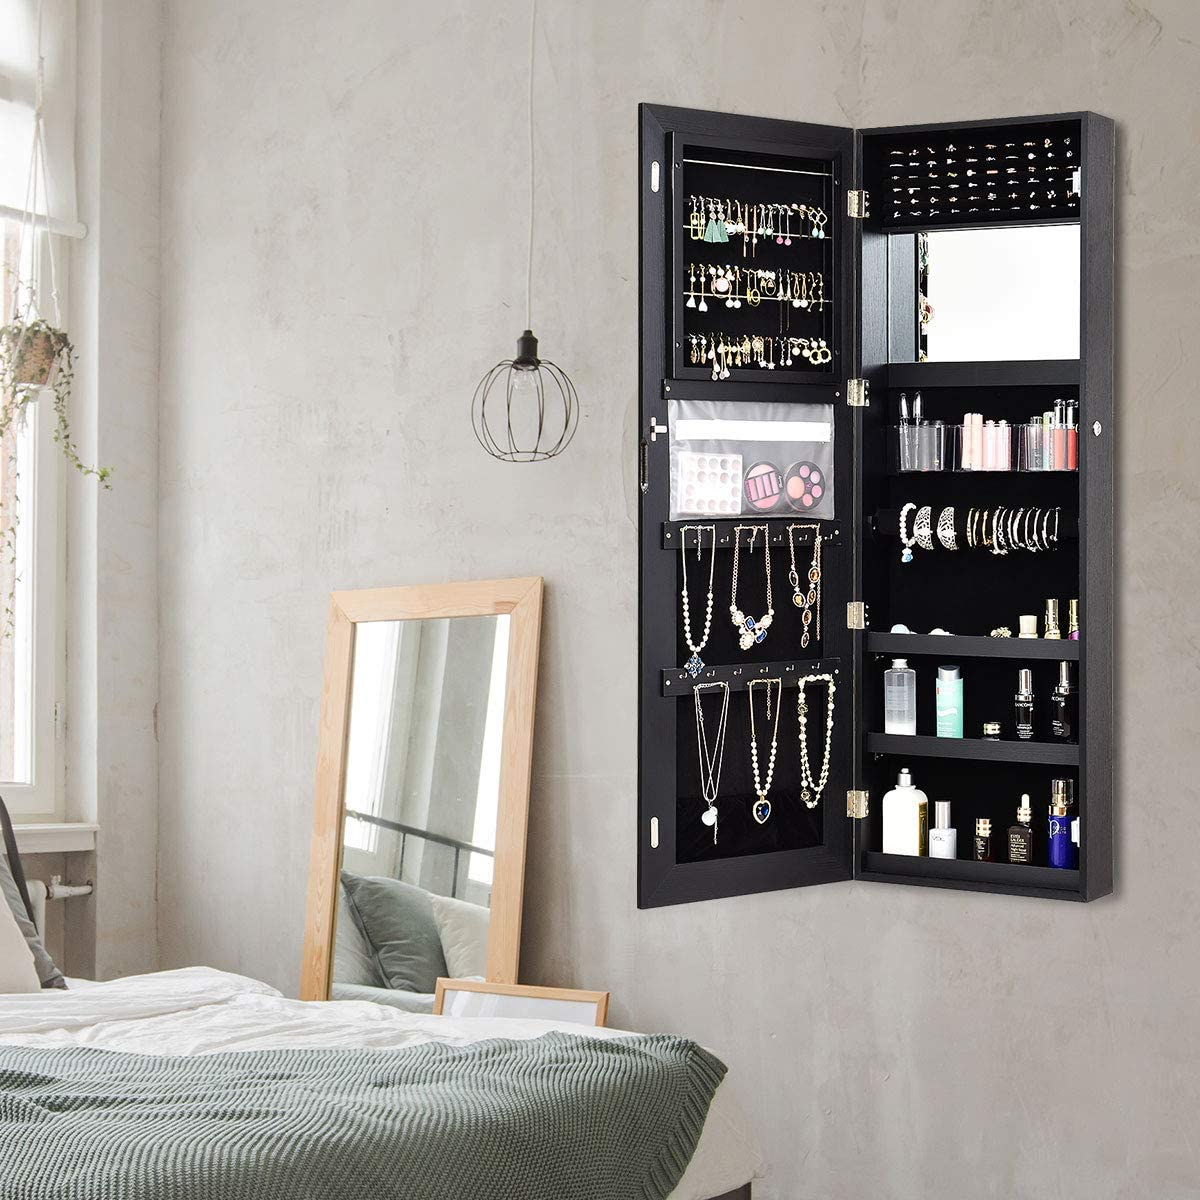 Large Storage Black Lockable Jewelry Organizer Armoire 47.5 Wall//Door Mounted Jewelry Armoire with Full Length Mirror CHARMAID Jewelry Cabinet with LED Touch Screen Mirror